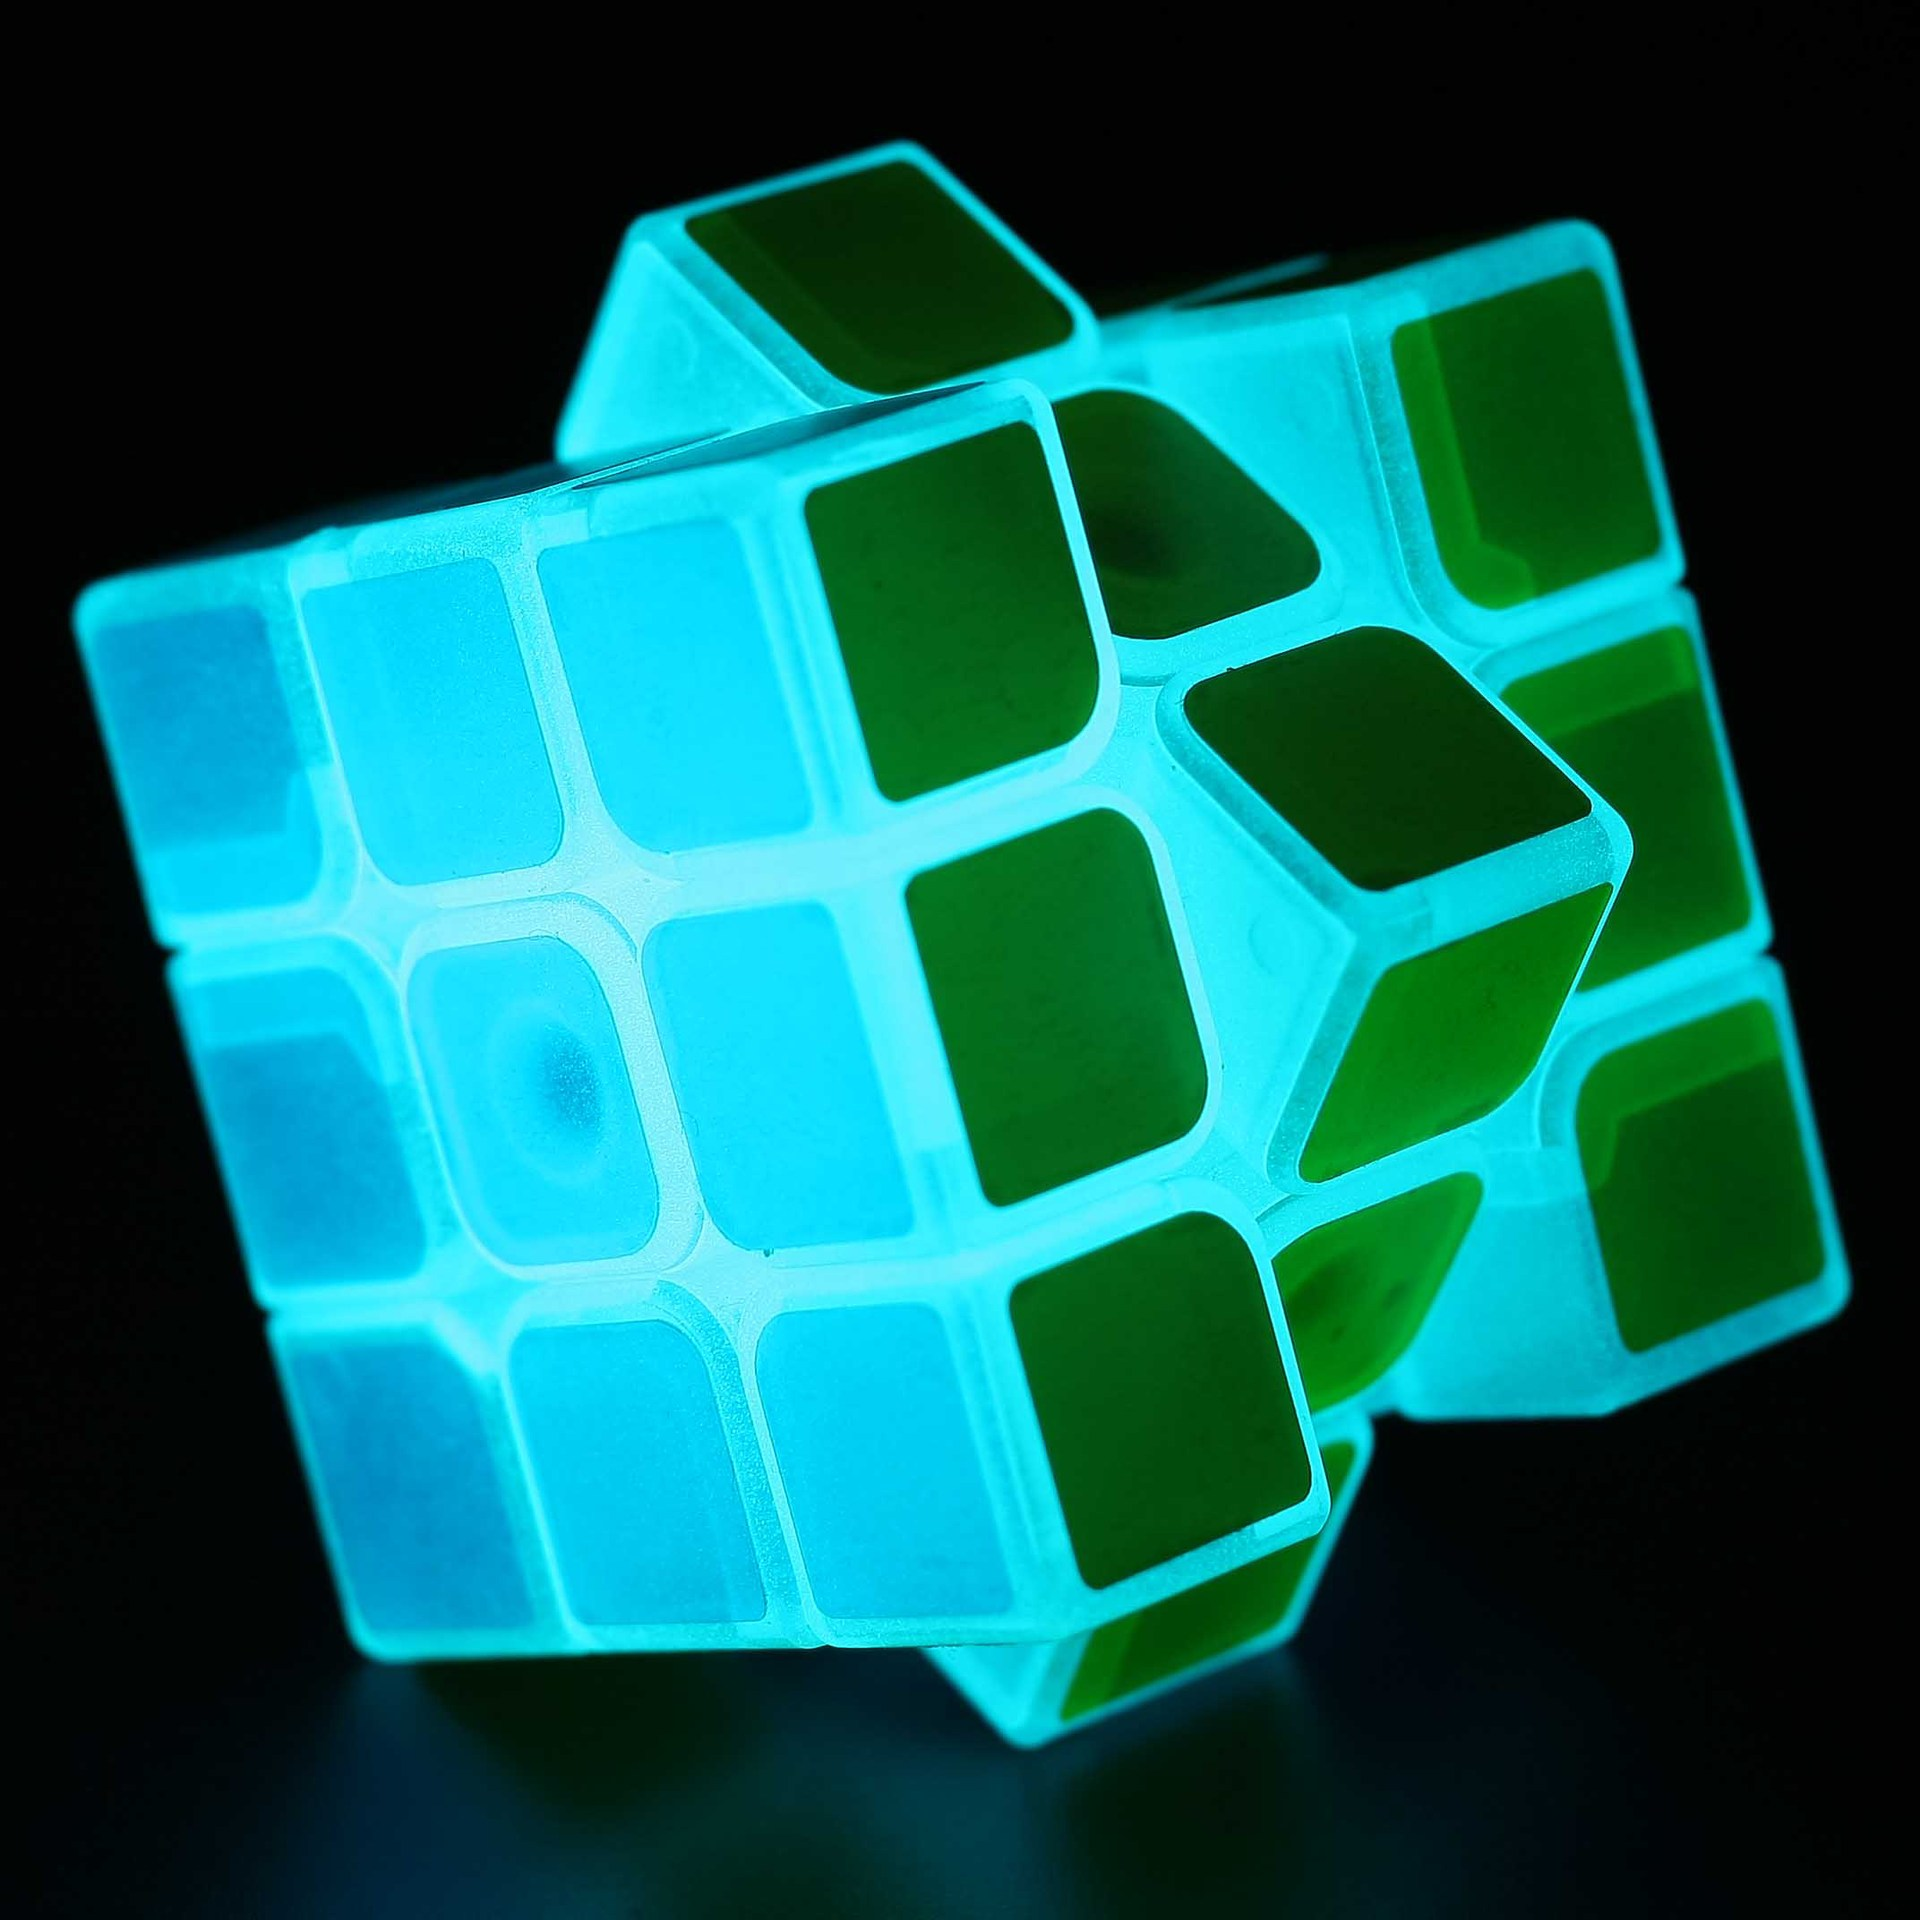 Magic Cube 3x3x3 Luminous Smooth Sticker Transparent Magico Cubo Puzzle Blocks Cube Challenge Educational Kids Gifts Toys 1305(China (Mainland))